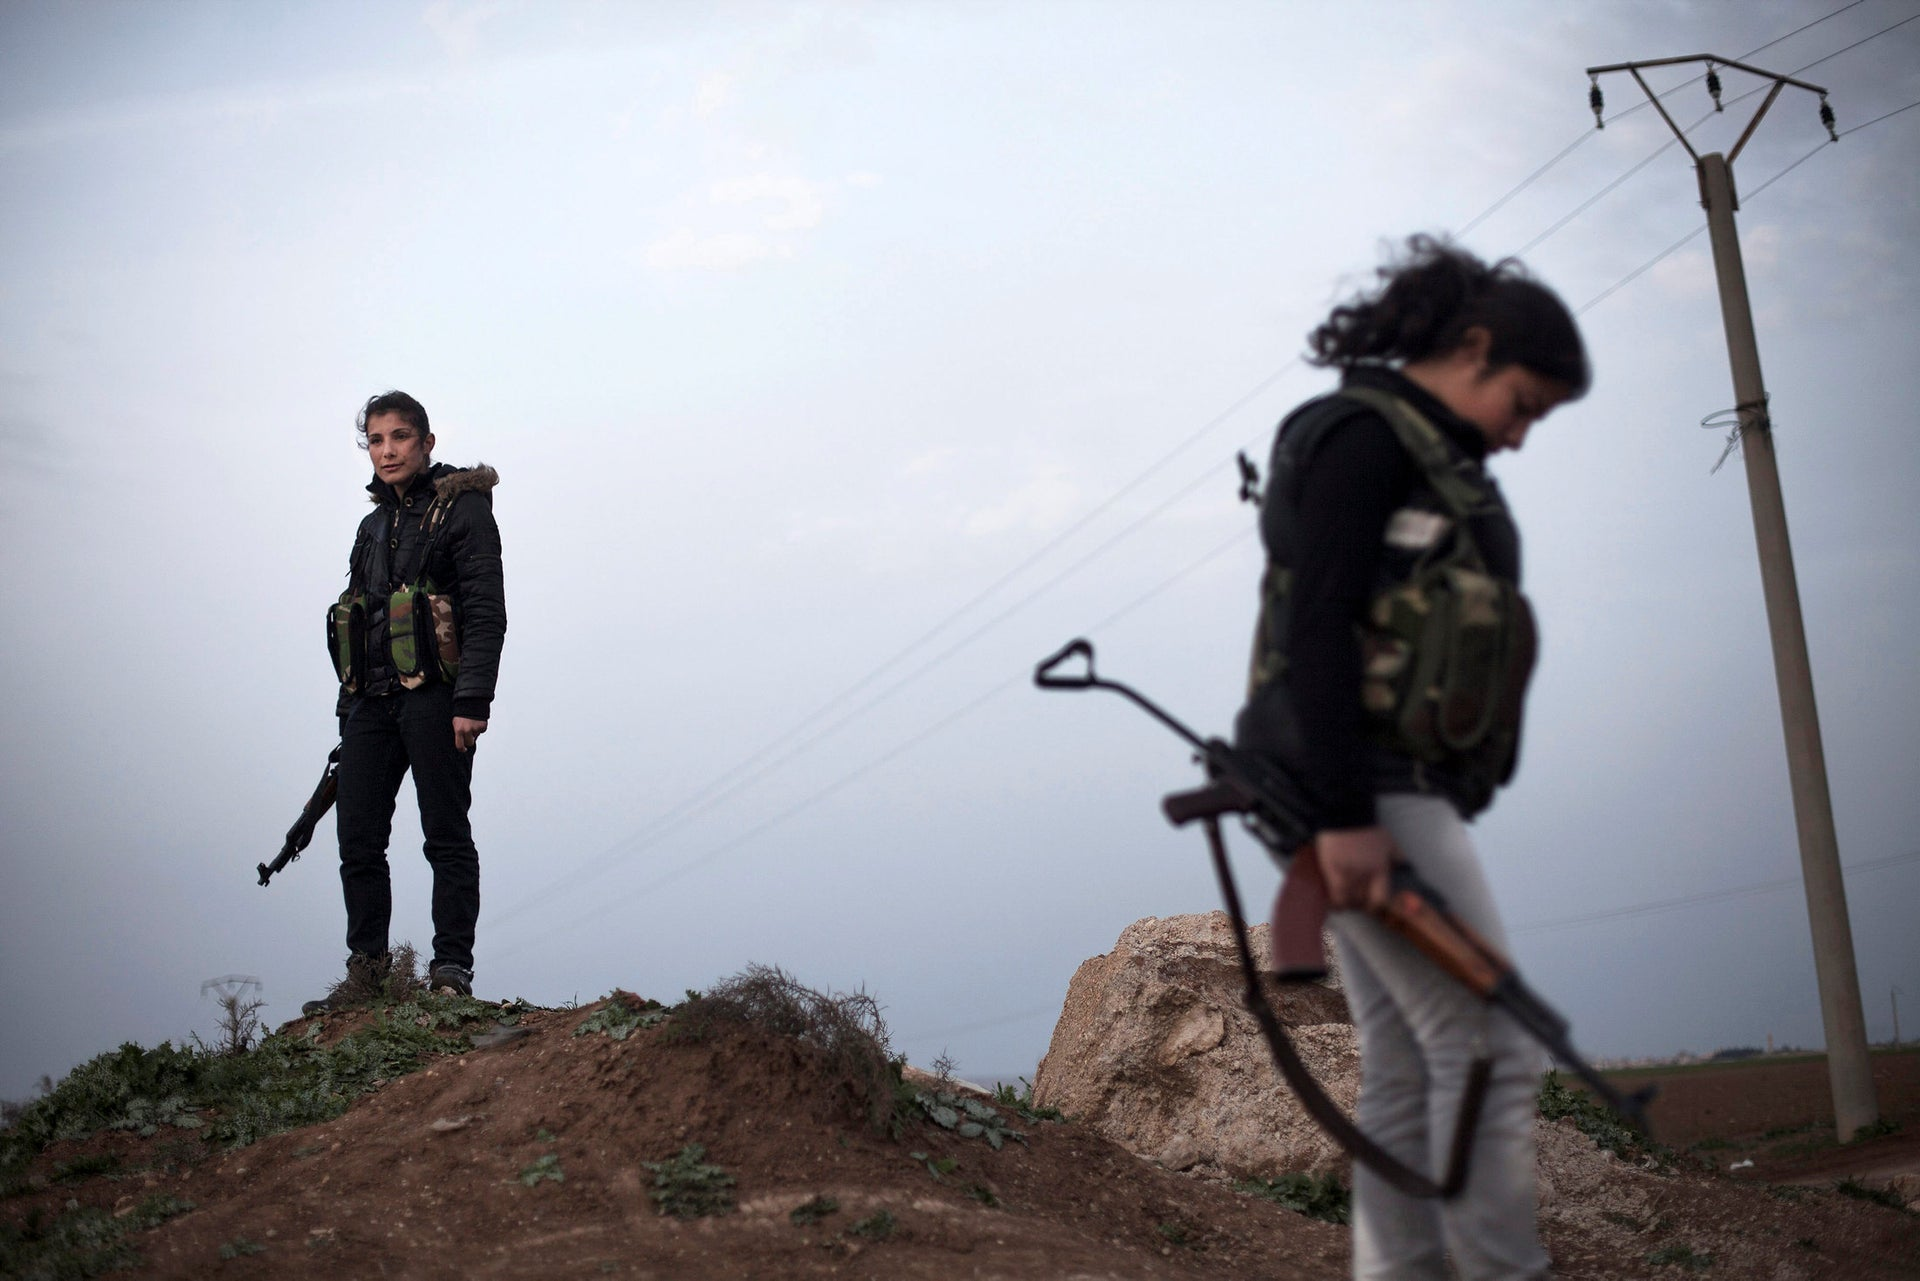 Kurdish female members of the Popular Protection Units stand guard at a check point near the northeastern city of Qamishli, Syria, 2013.